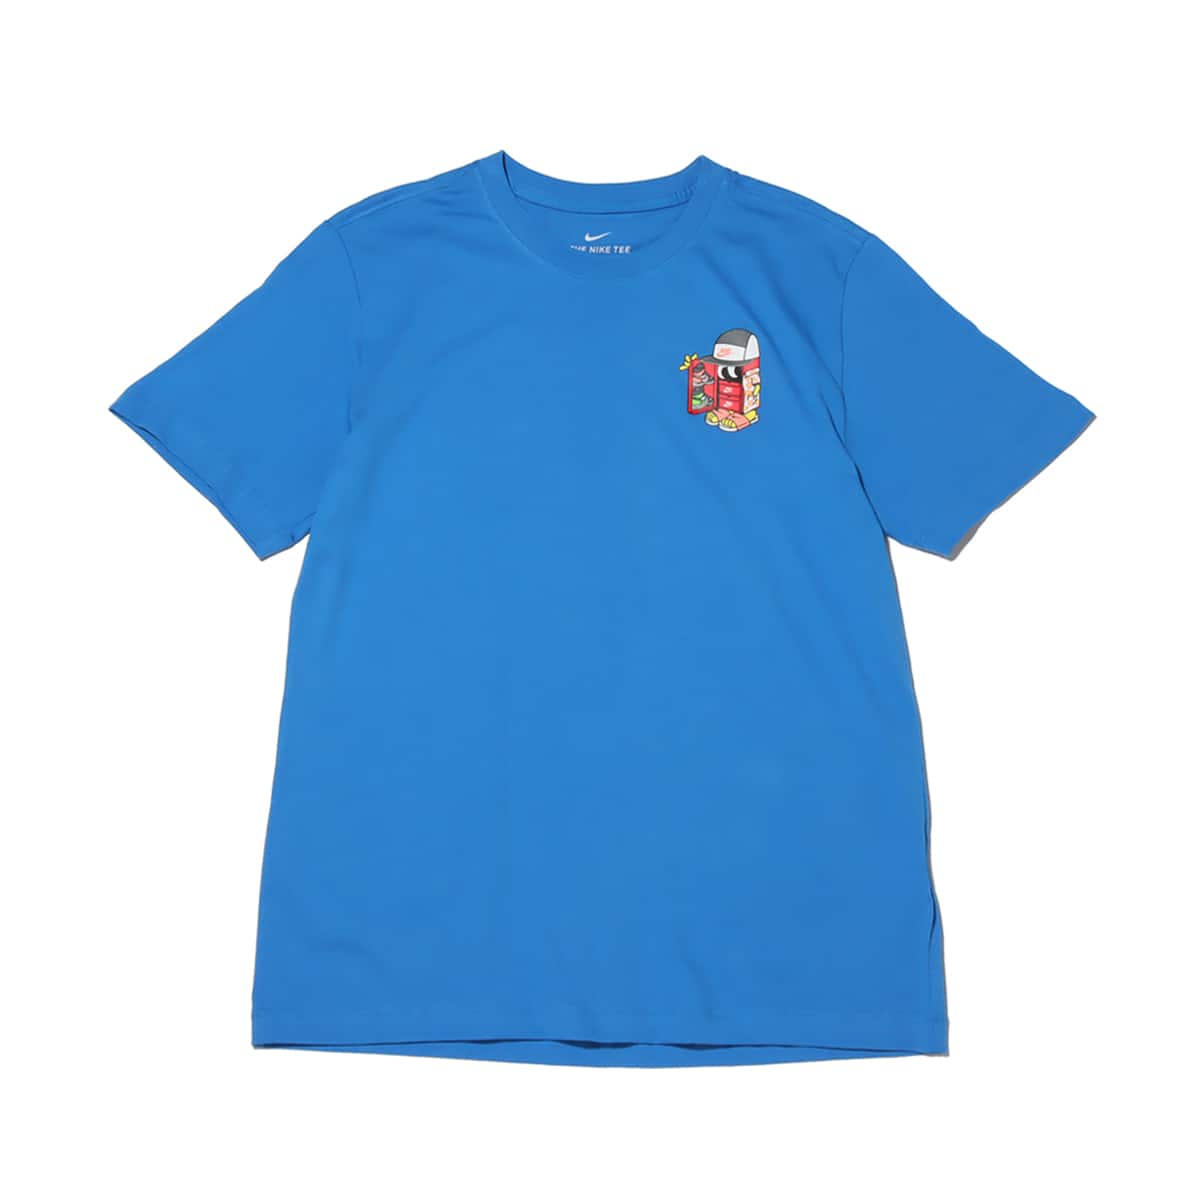 NIKE AS M NSW TEE SHOEBOX LT PHOTO BLUE 21SU-I_photo_large